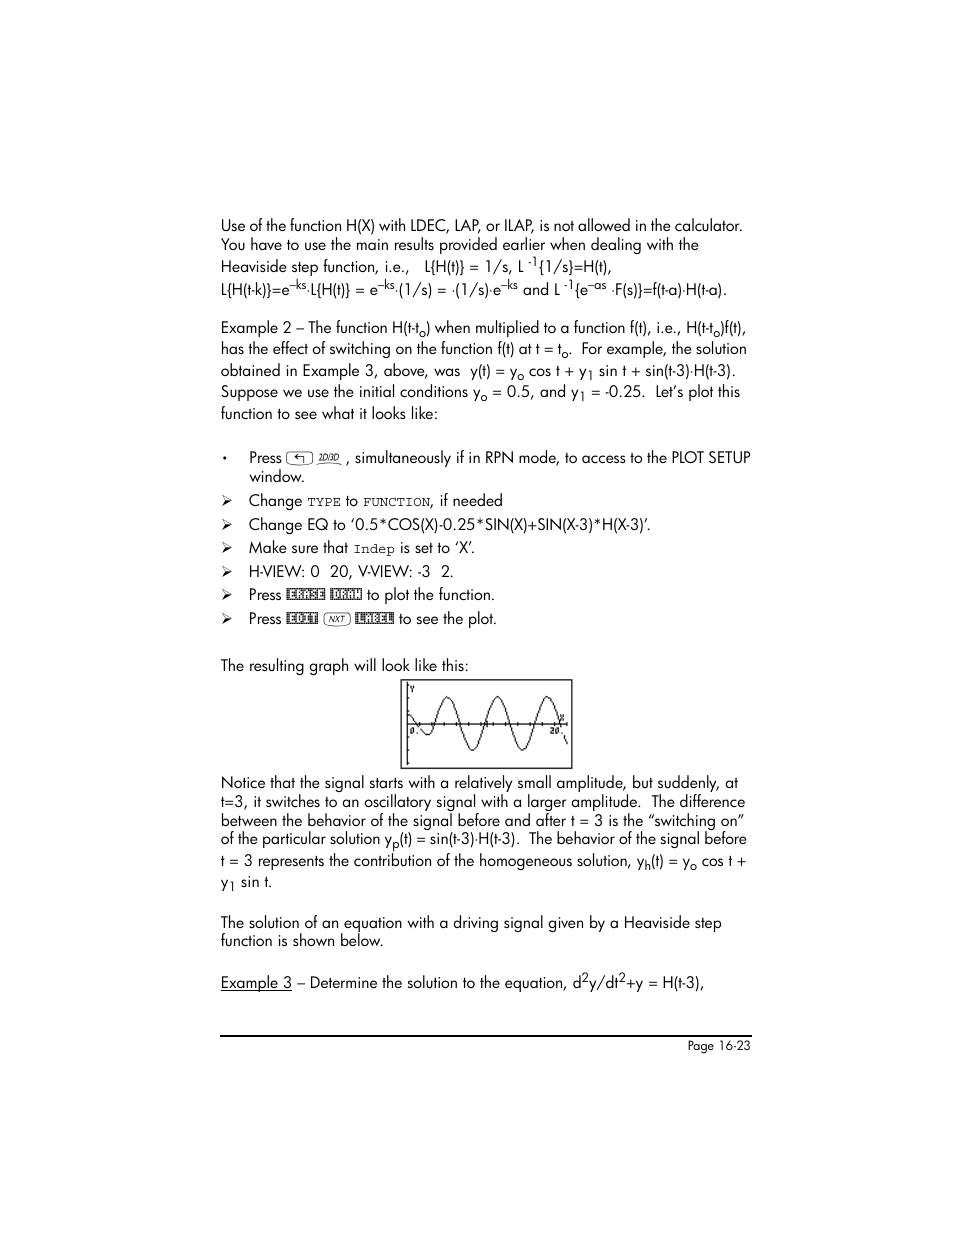 HP 50g Graphing Calculator User Manual | Page 500 / 887